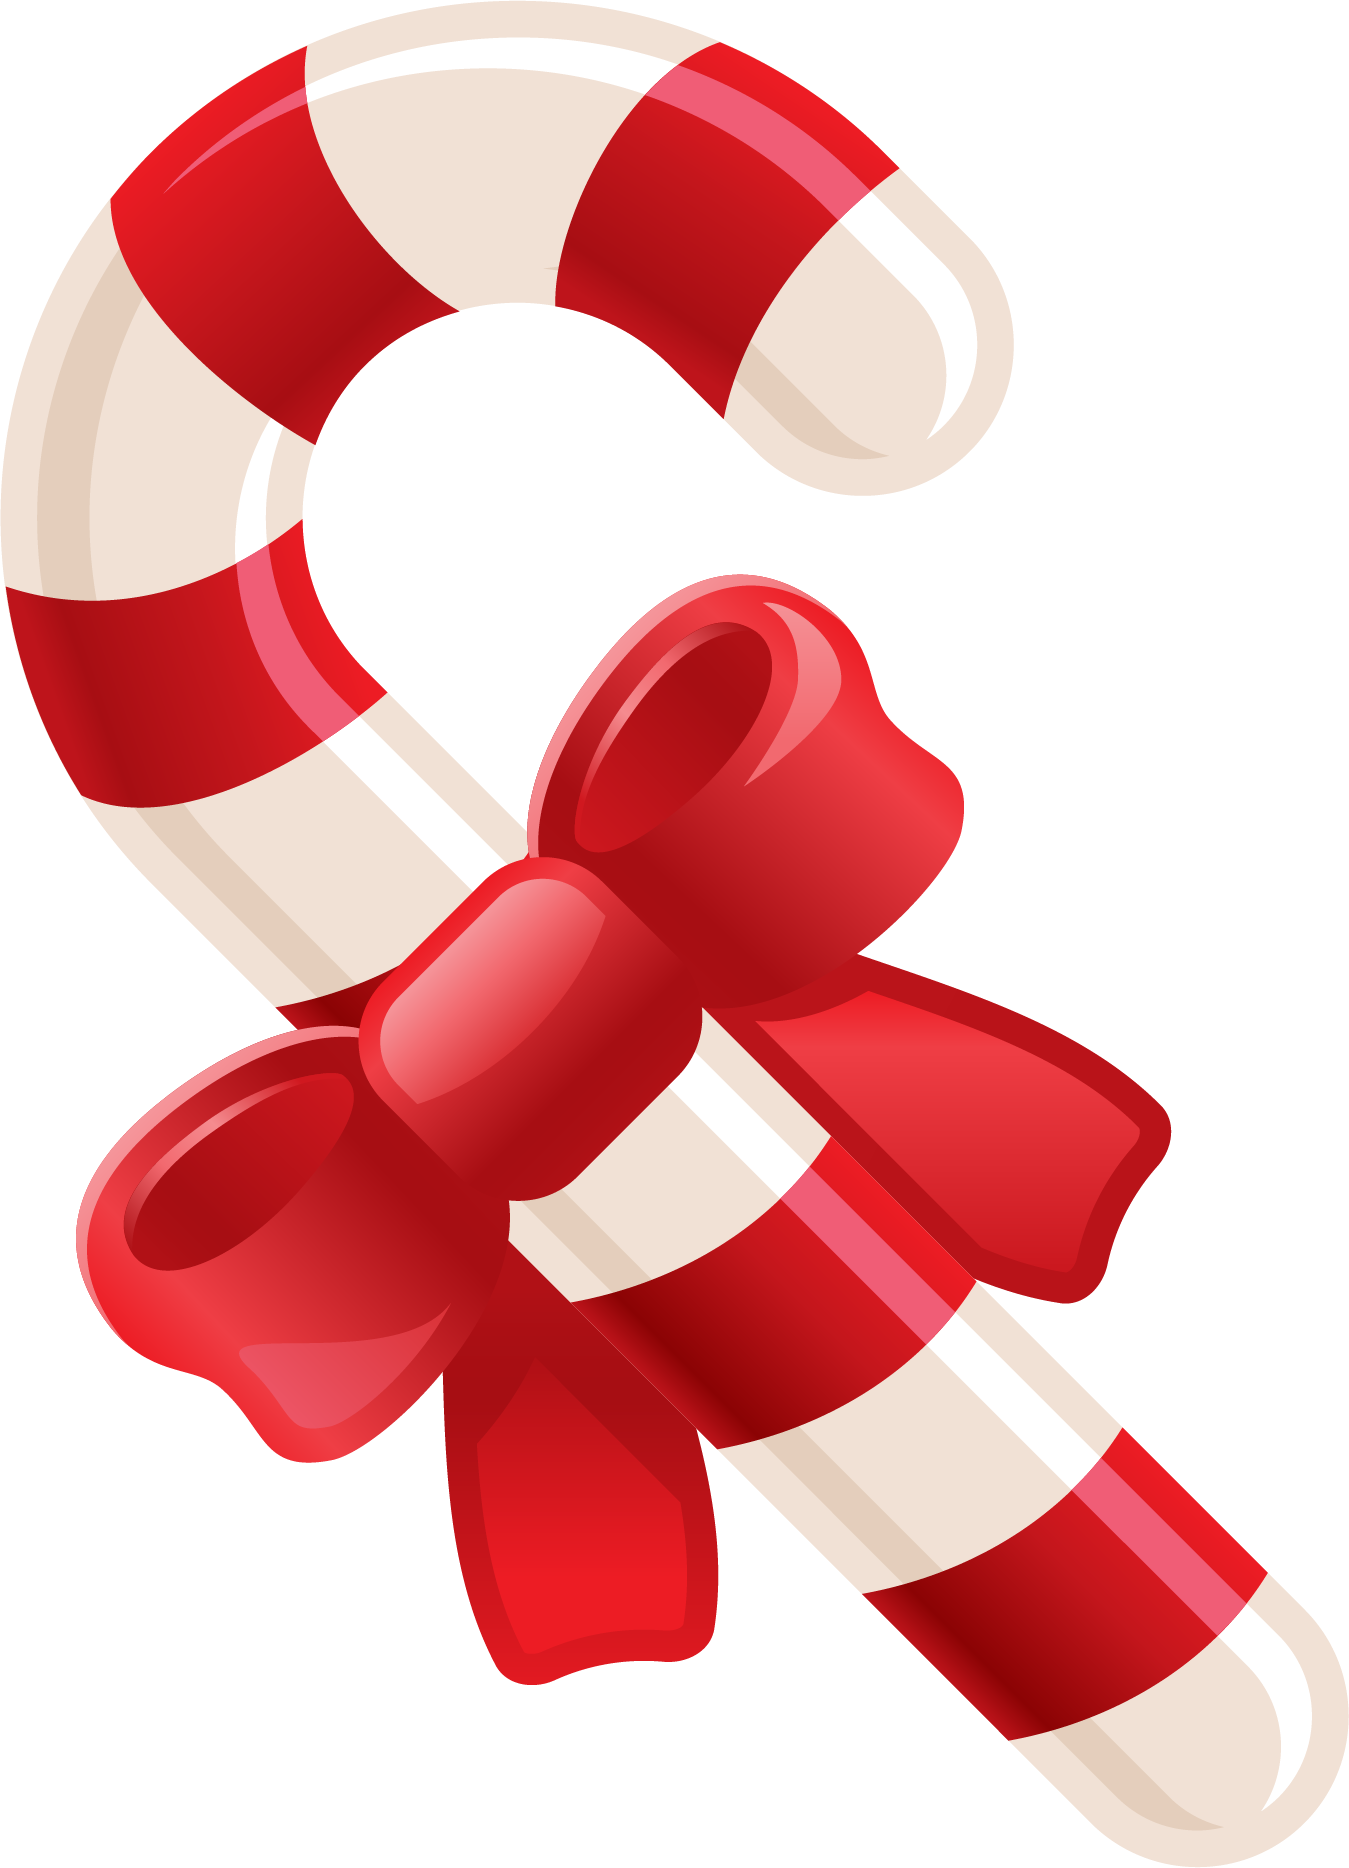 Clip Art Holiday - ClipArt Best - Christmas Clipart